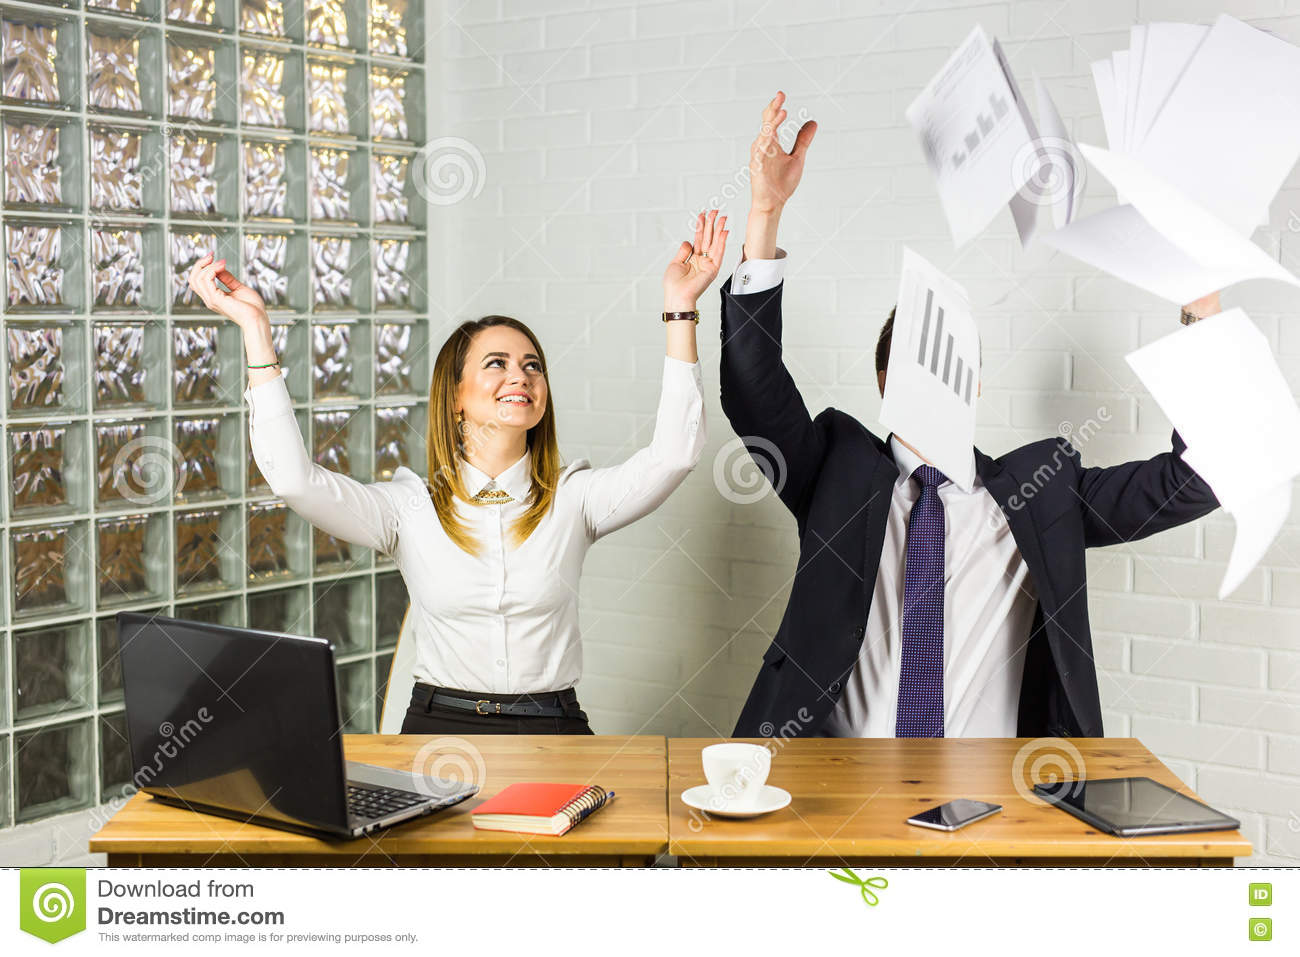 Business people excited happy smile, throwing up papers, documents fly in air, success team concept